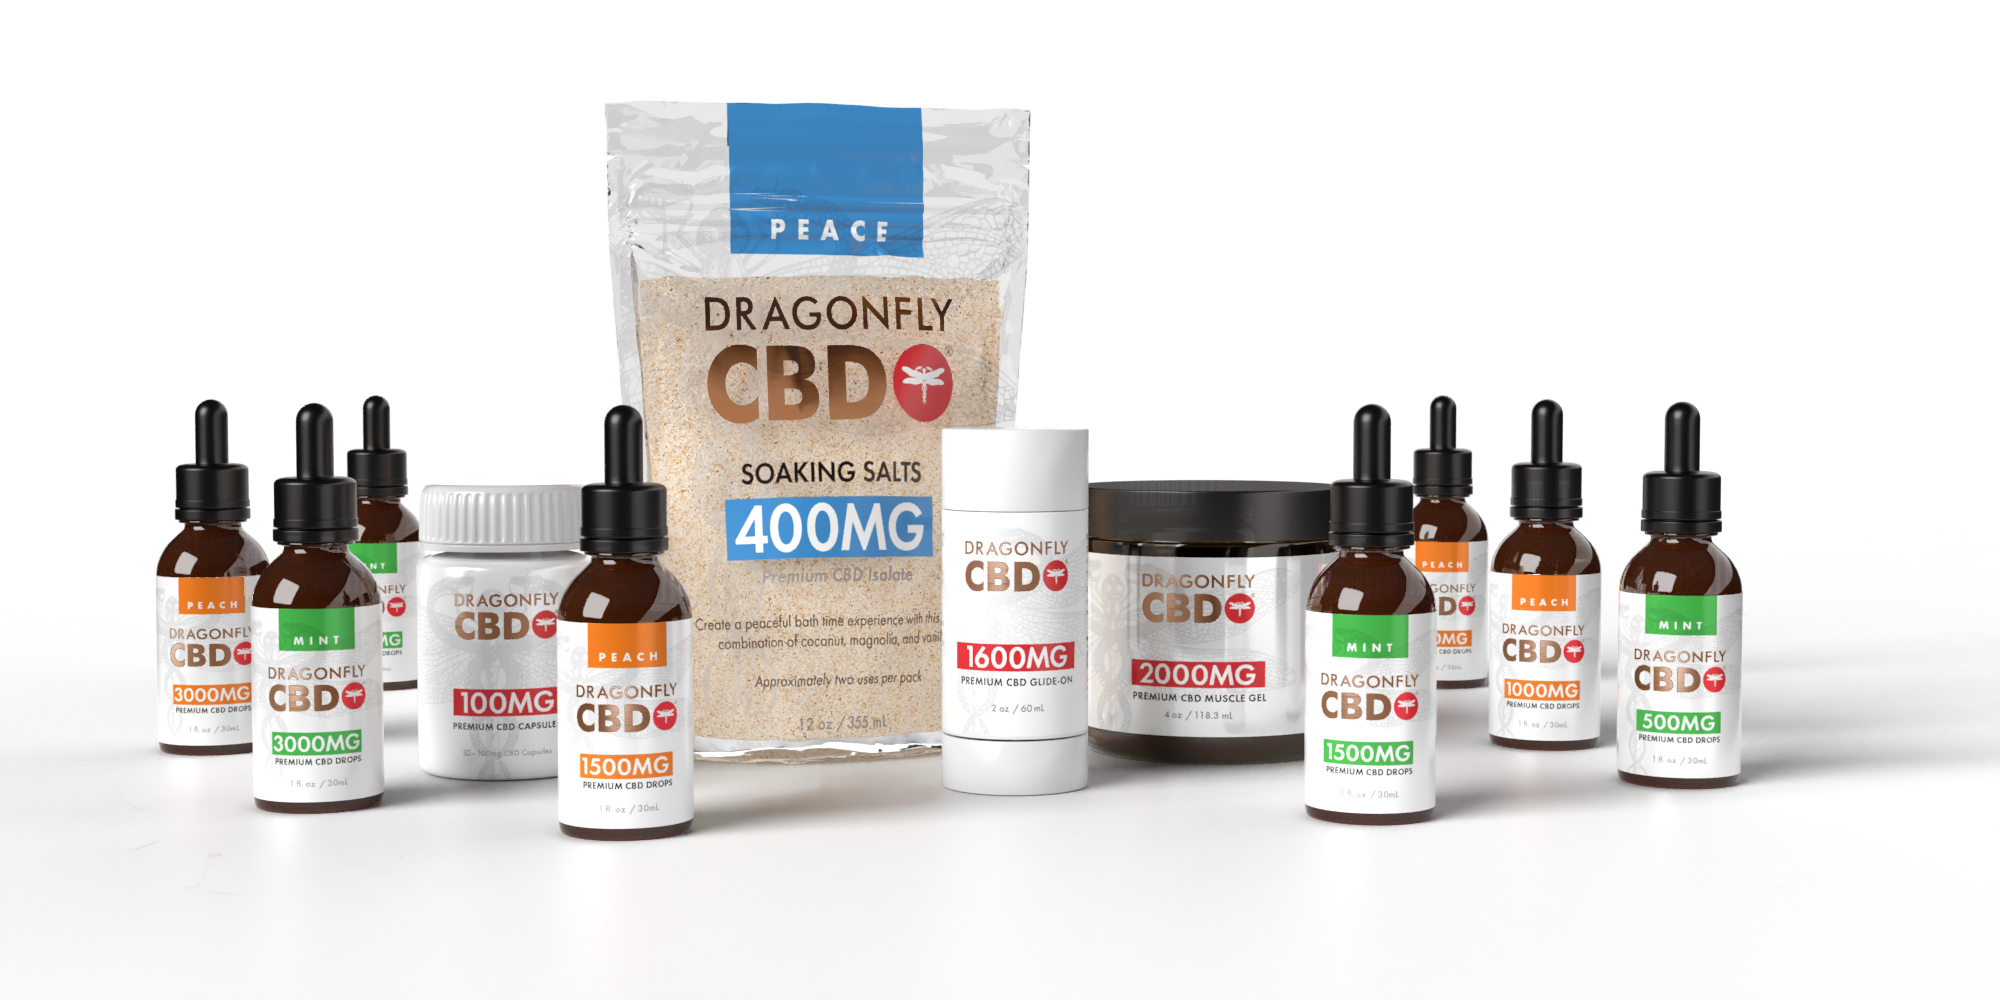 Dragonfly CBD is now offered Nationwide Through Mr. Checkout's Direct Store Delivery Distributors.